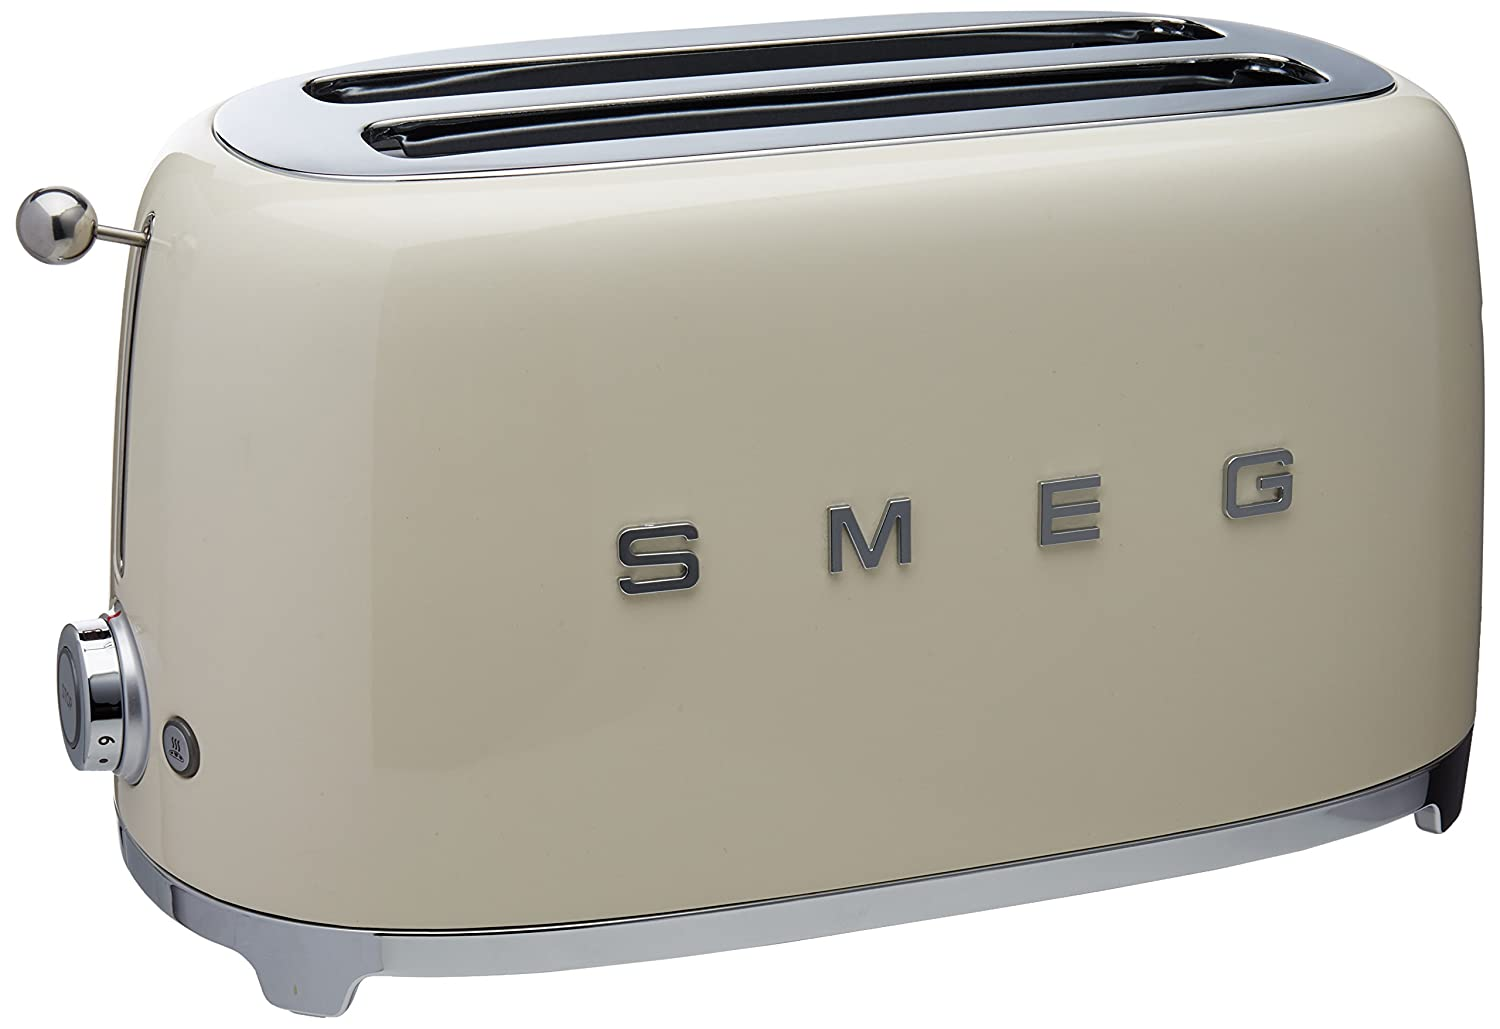 3. Smeg 4-Slice Toaster-Cream